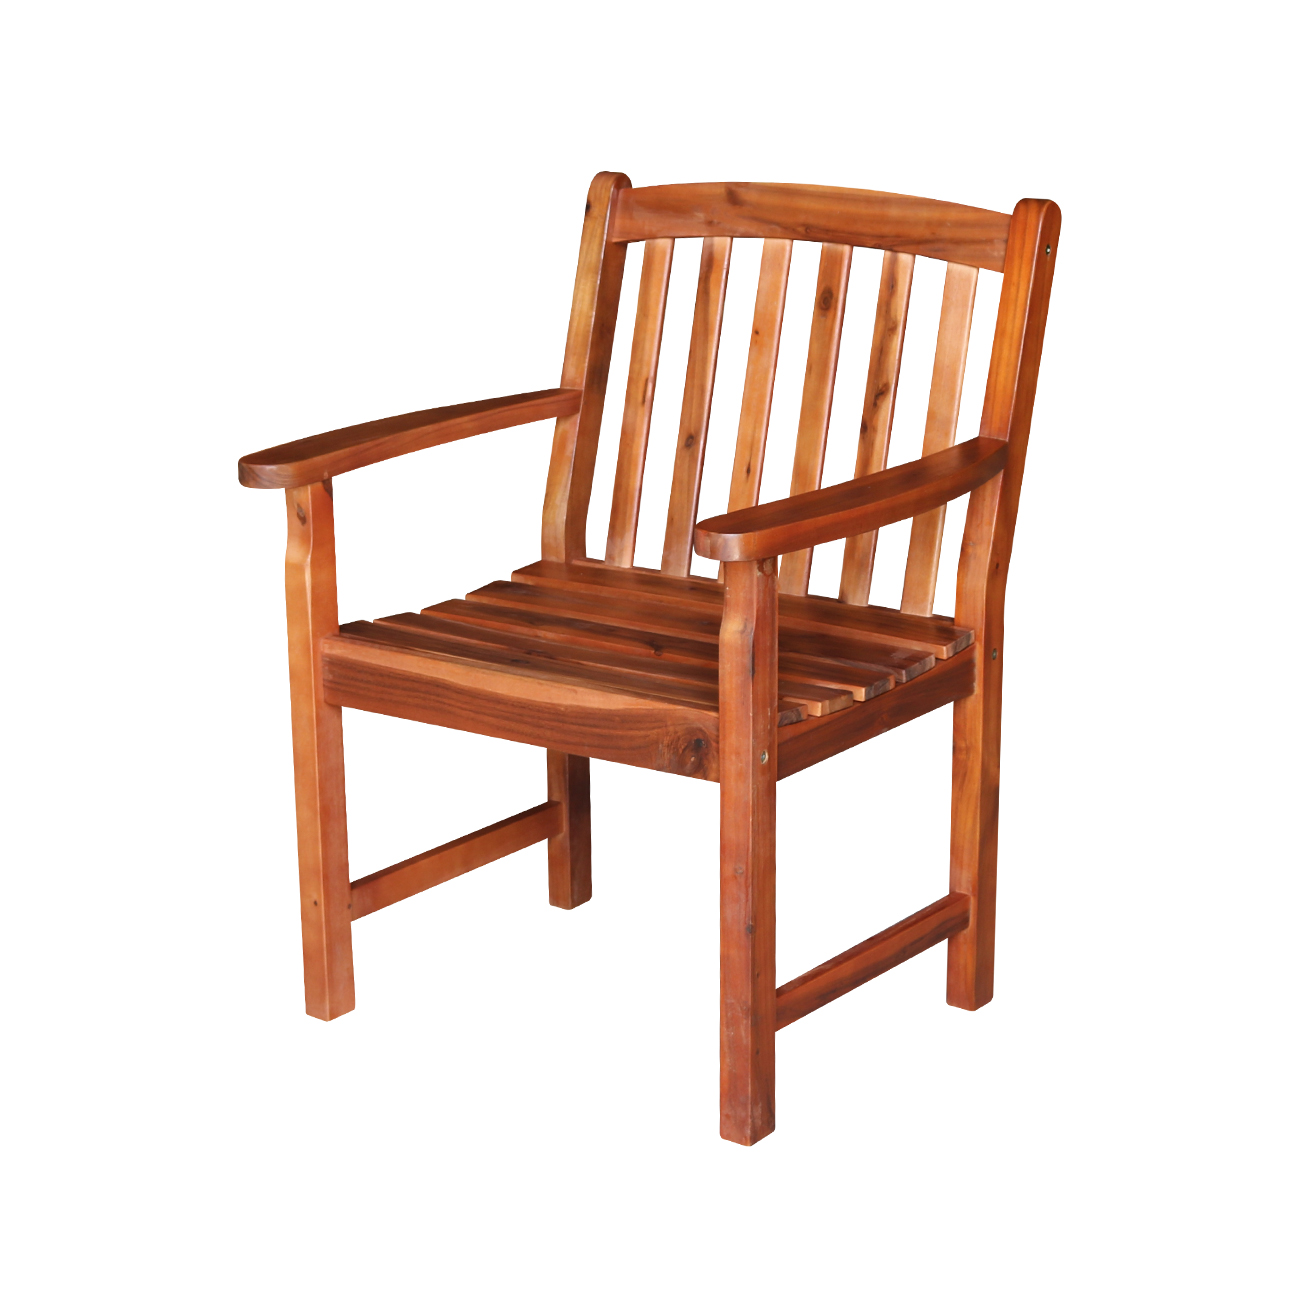 Outdoor Slatback Chair with Arms - Oiled Finish